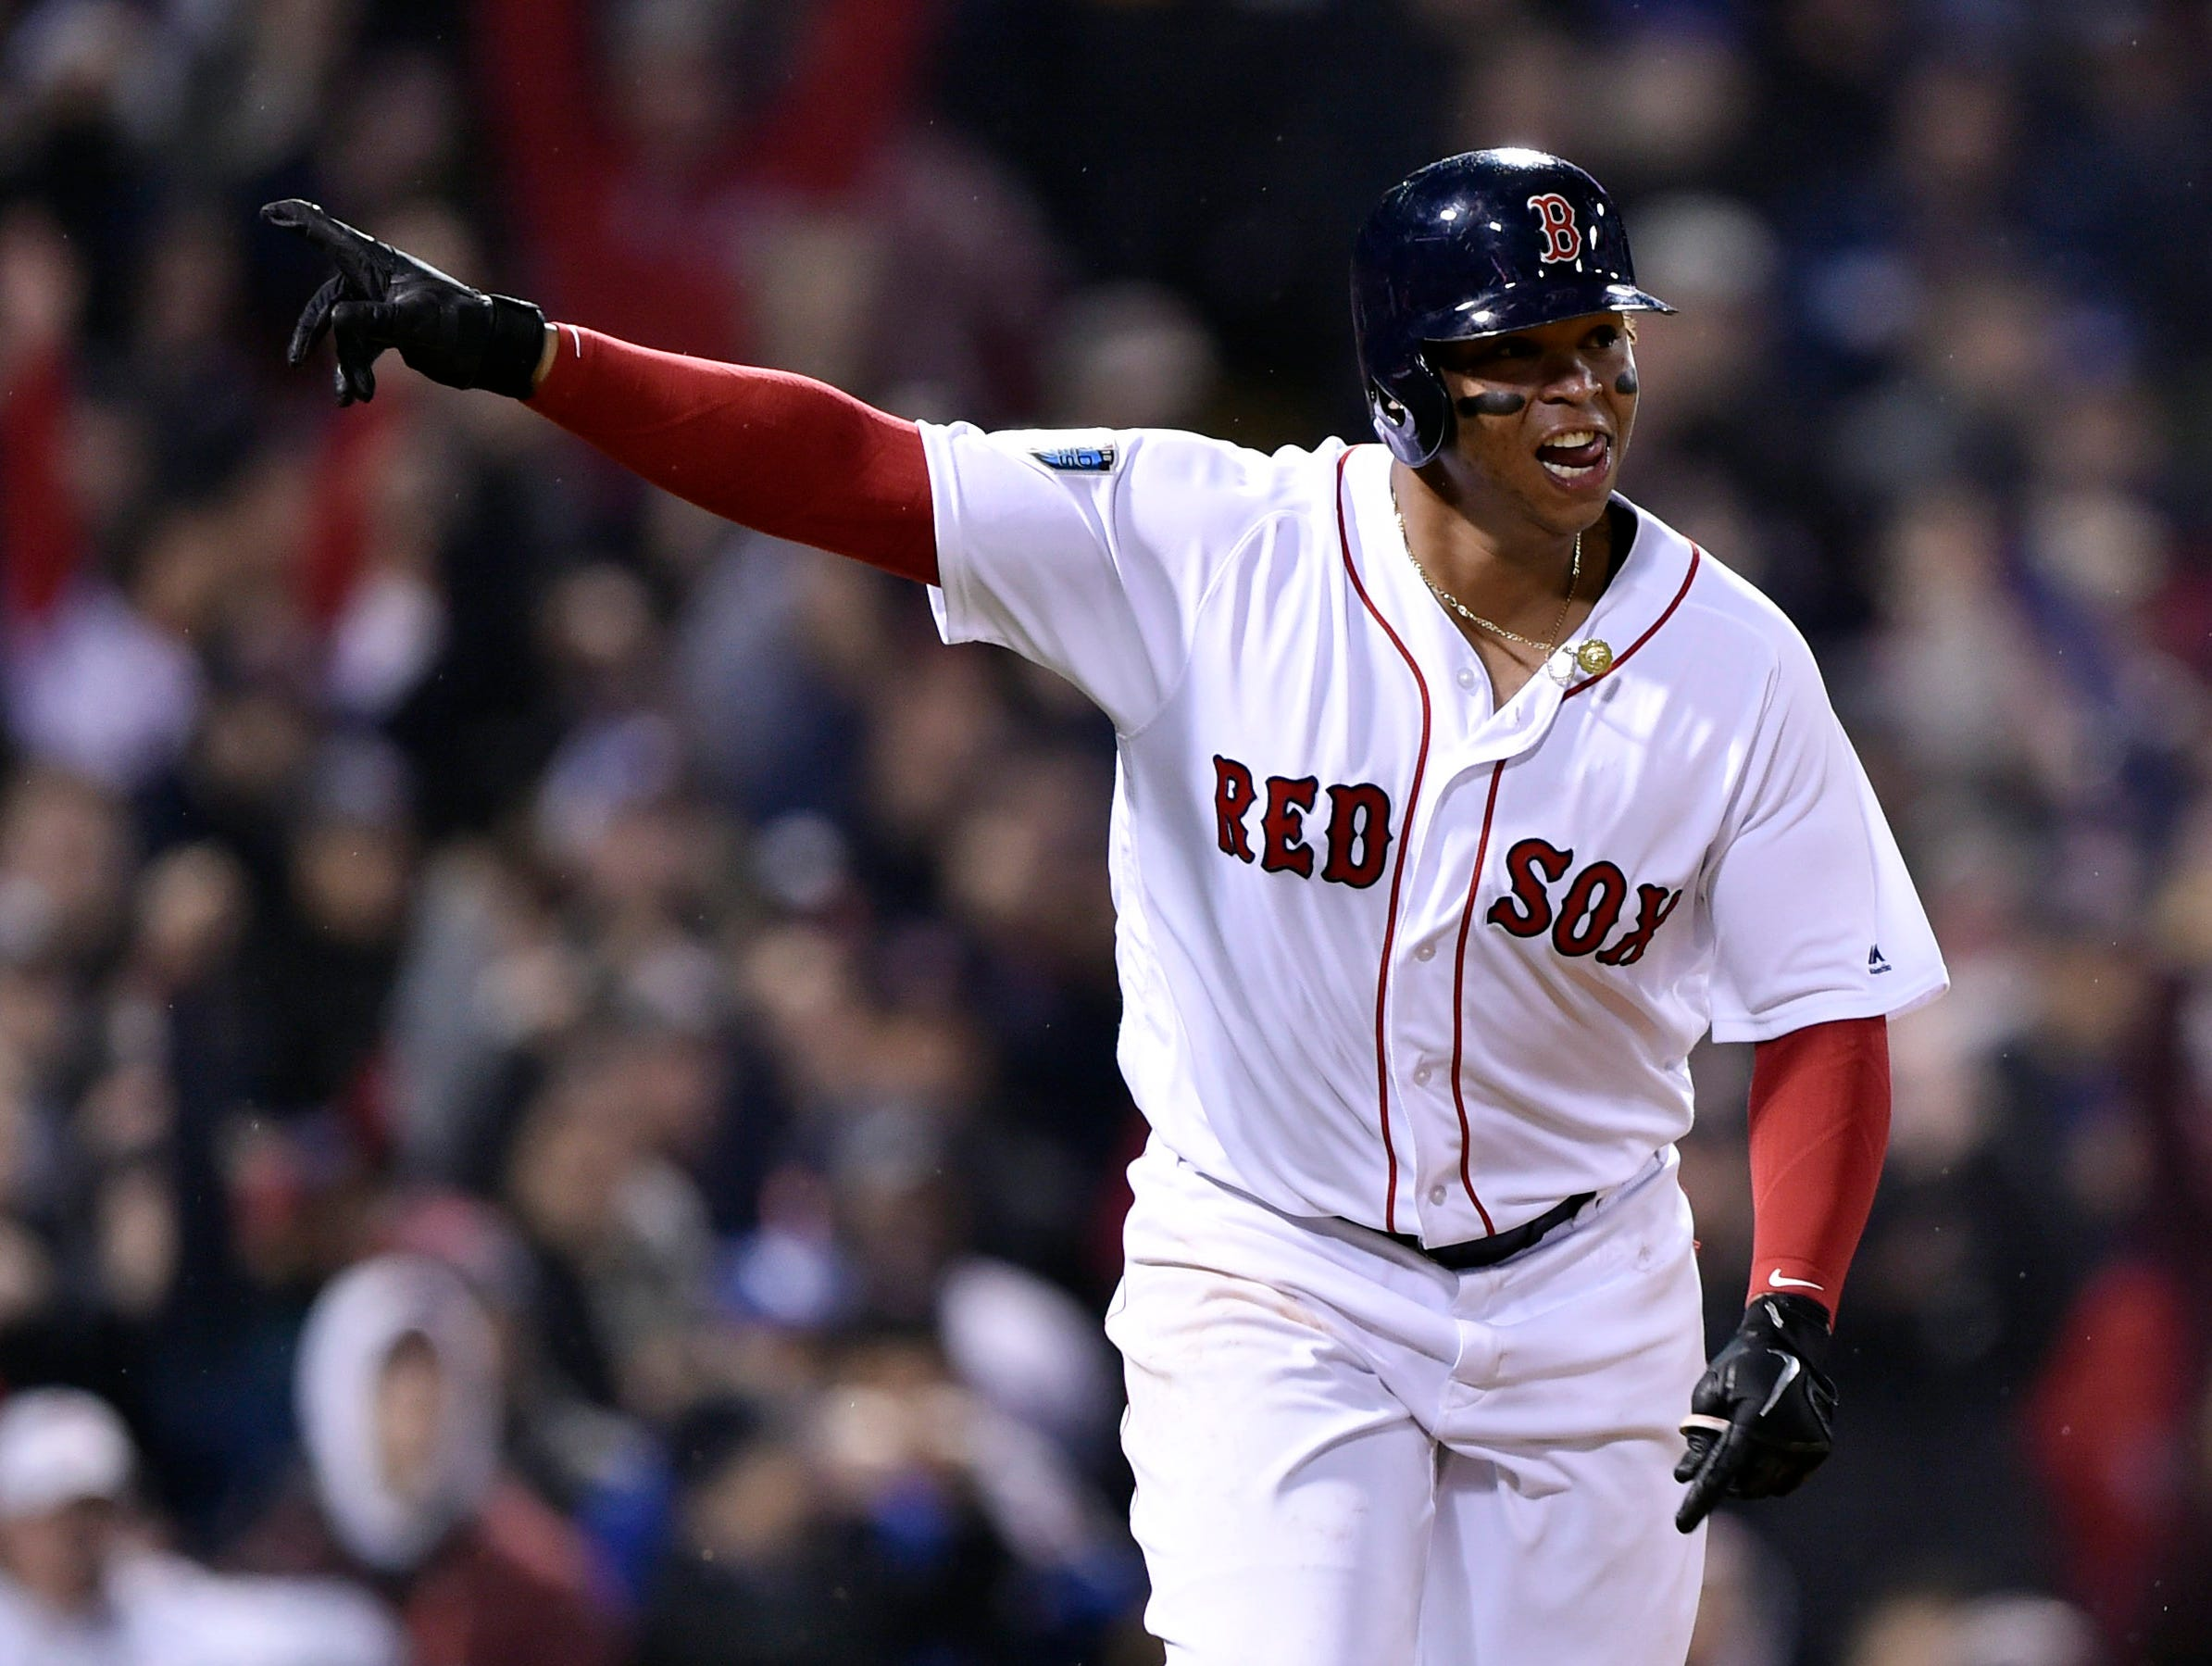 Game 1 at Fenway Park: Rafael Devers celebrates after an RBI single in the fifth.